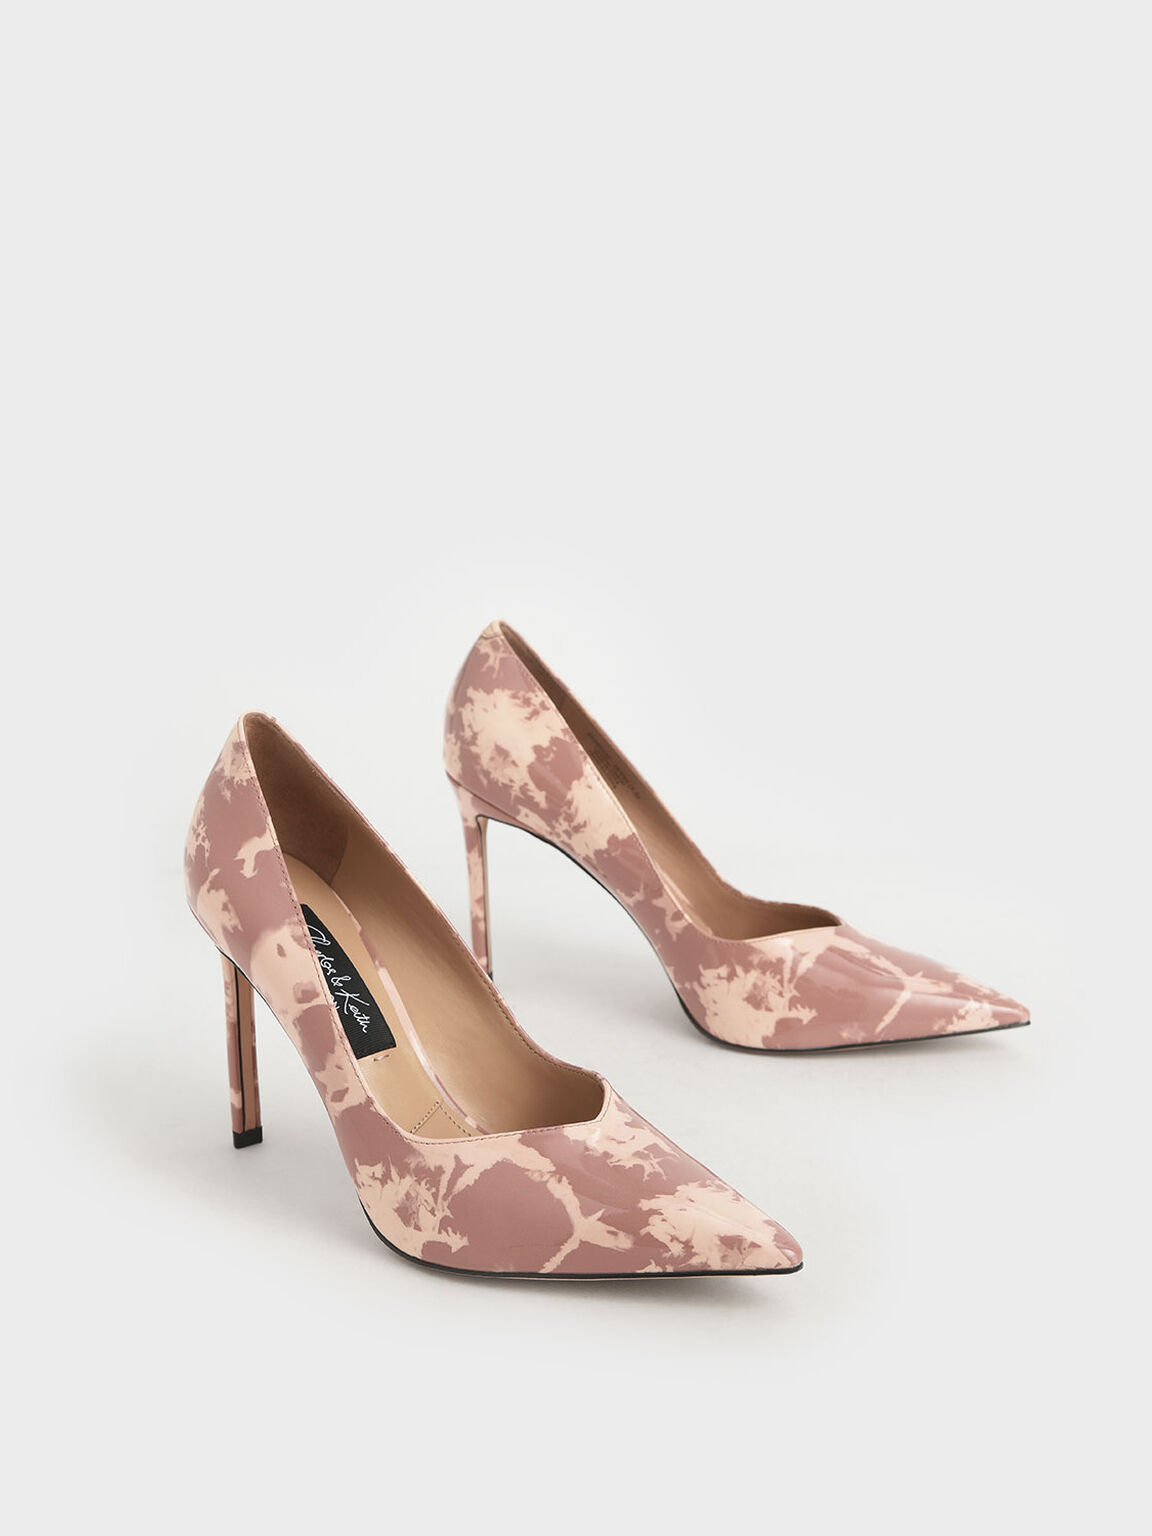 Patent Leather Printed Pointed Toe Pumps, Blush, hi-res